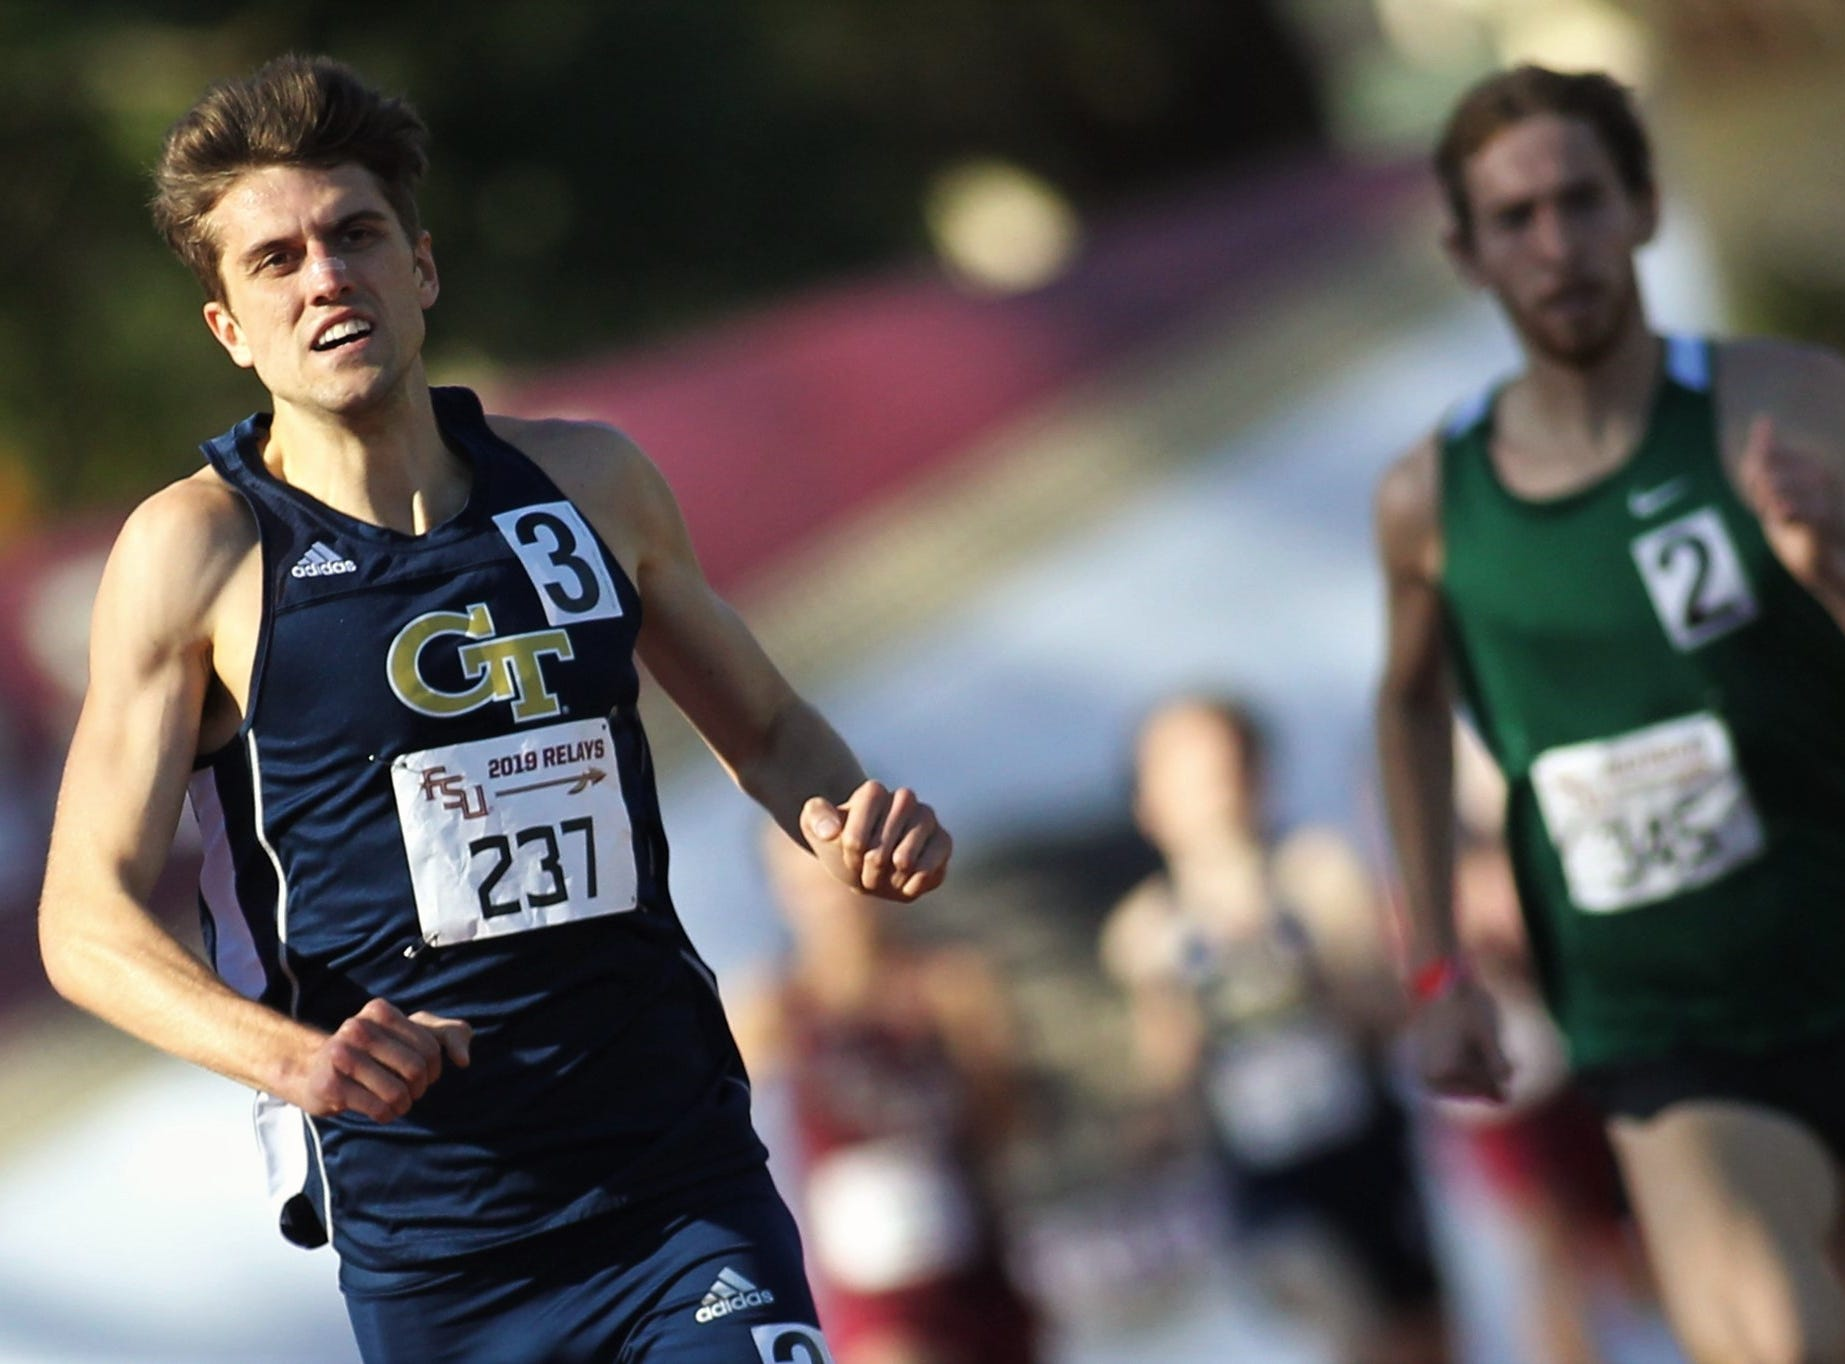 Georgia Tech senior Avery Bartlett, a Chiles alum, races to a win in the 1500-meter run during Friday's college portion of the FSU Relays at Mike Long Track on March 22, 2019.